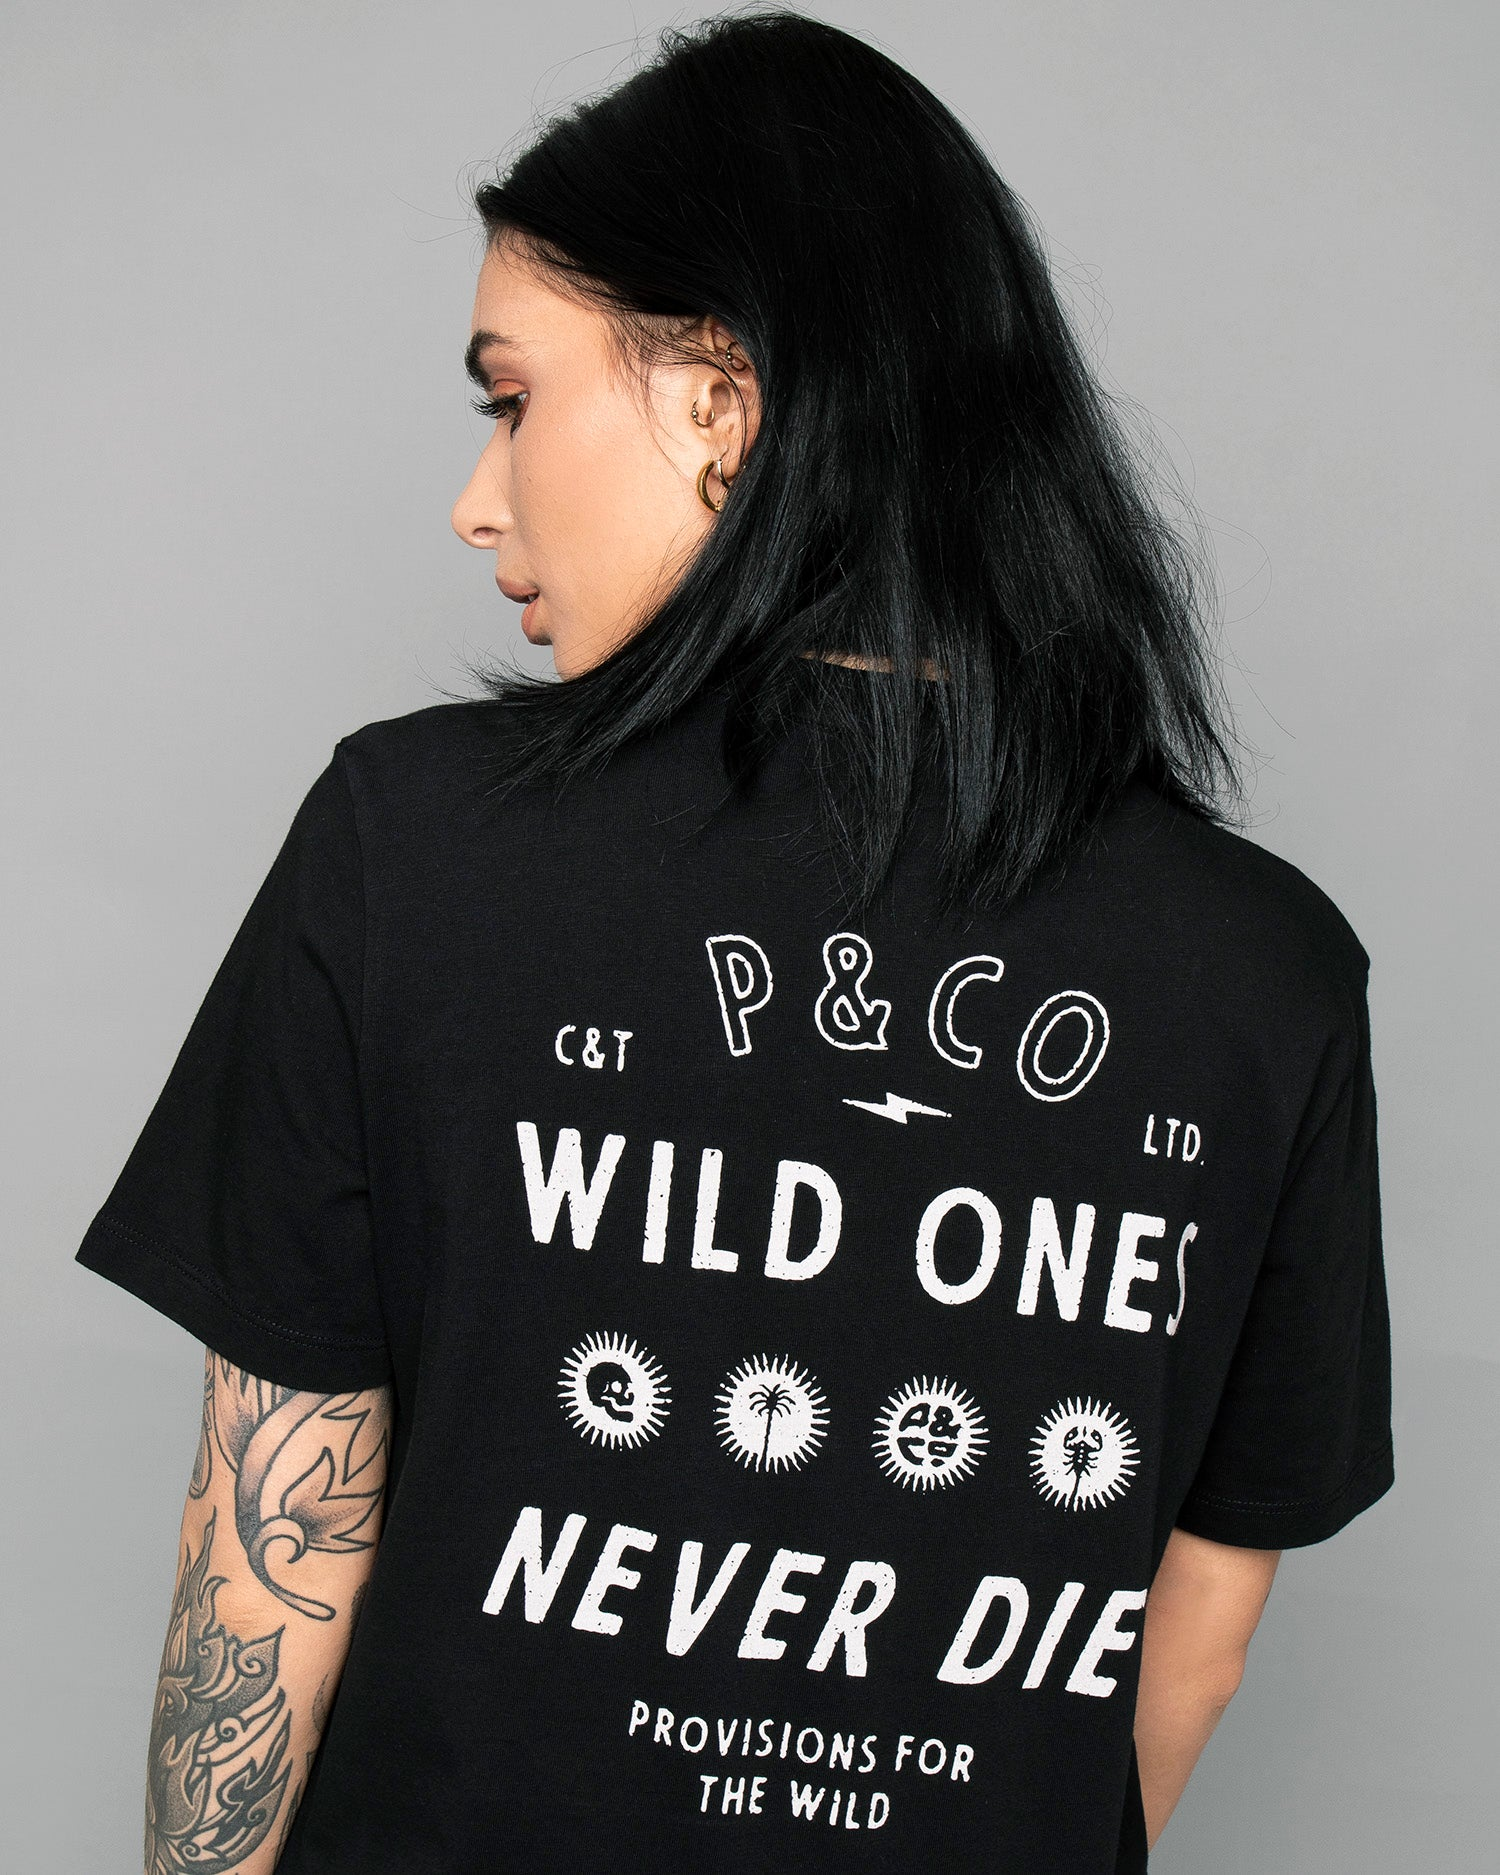 Provisions for the wild Womens Black T-Shirt